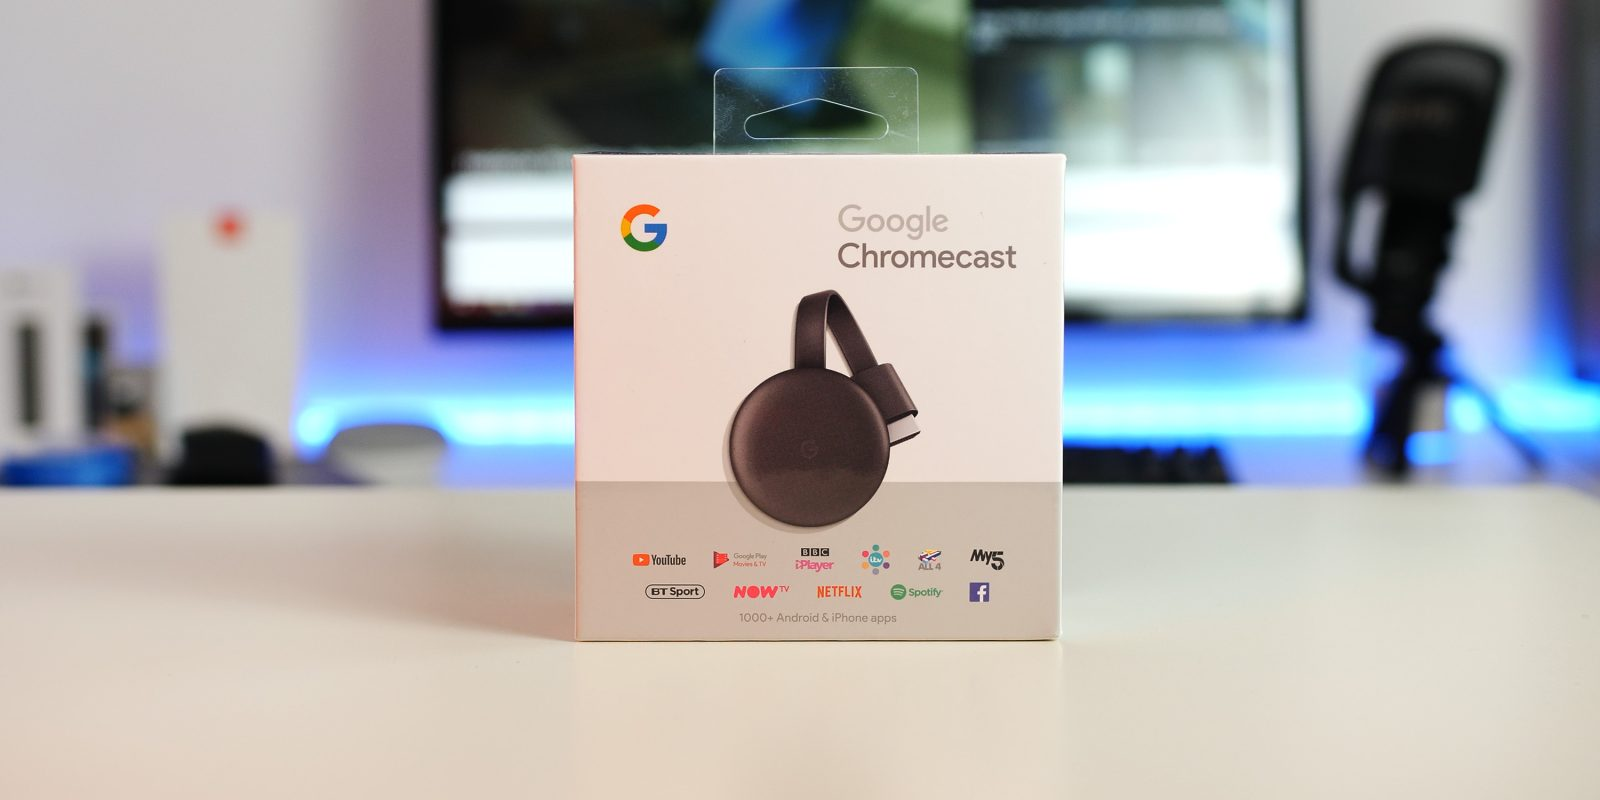 Review: The new Google Chromecast is much the same w/ some solid upgrades [Video] - 9to5Google